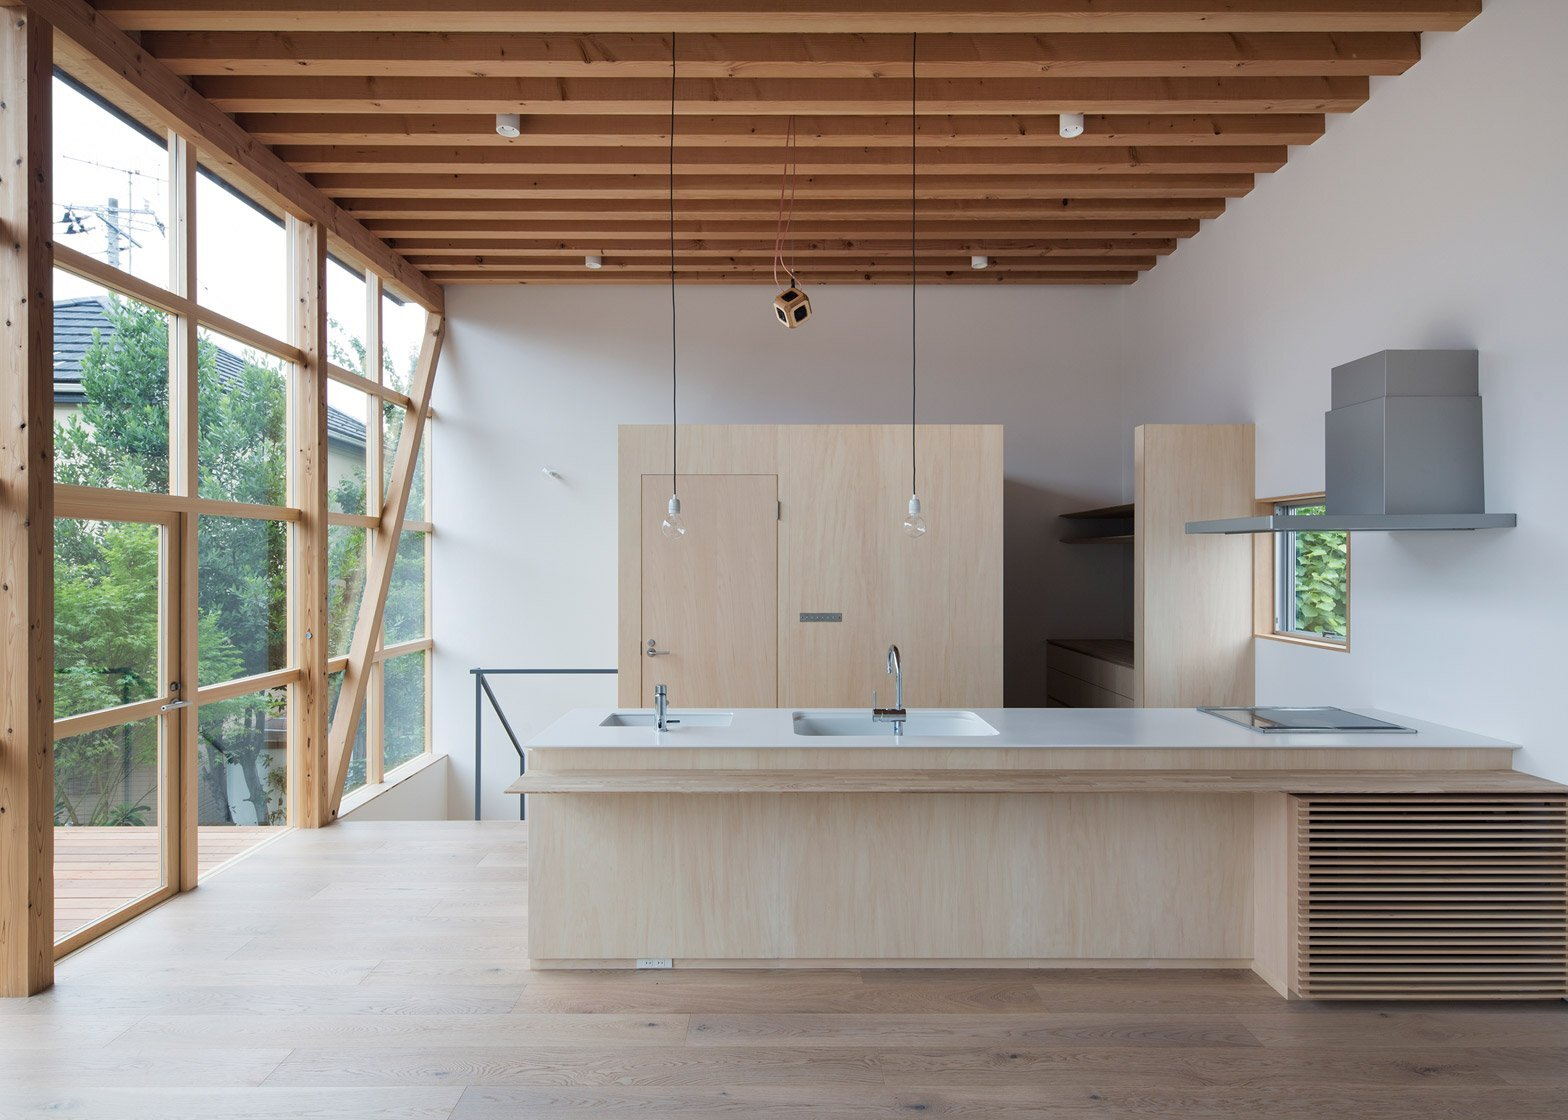 Module Grid House - Tetsuo Yamaji Architects - Kanto Japan - Kitchen - Humble Homes